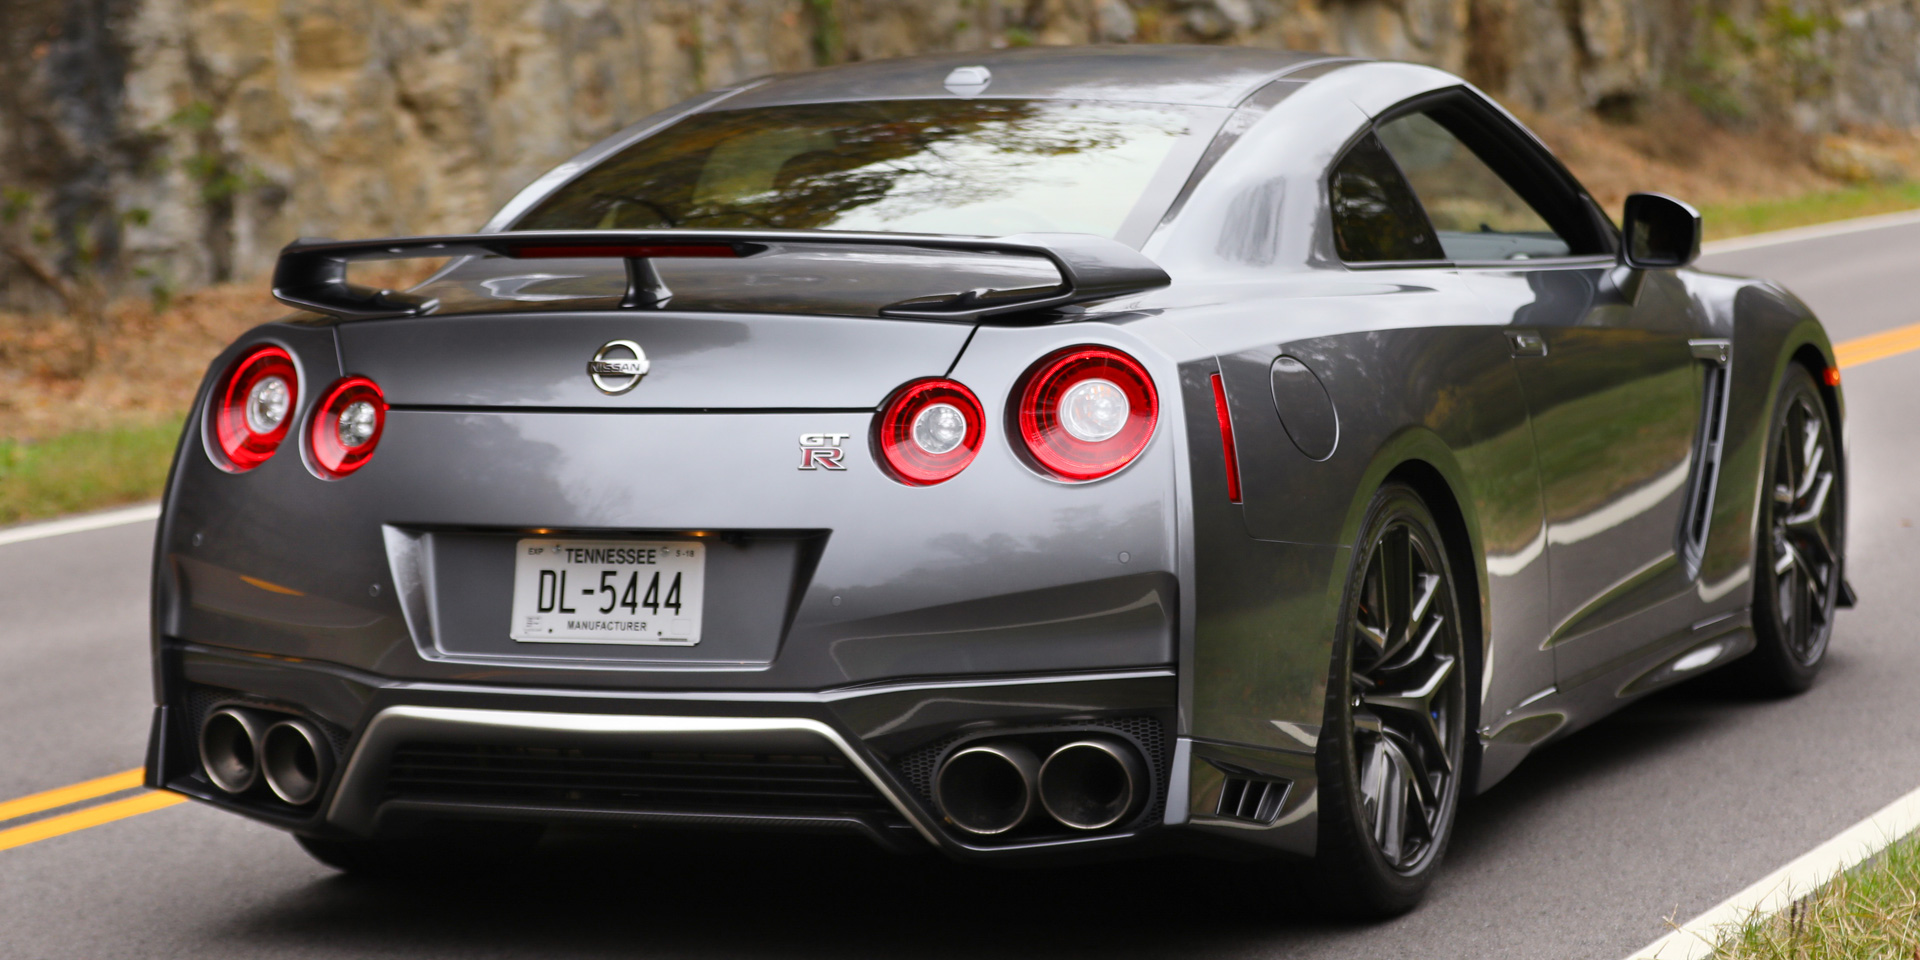 2018 - Nissan - GT-R - Vehicles on Display | Chicago Auto Show